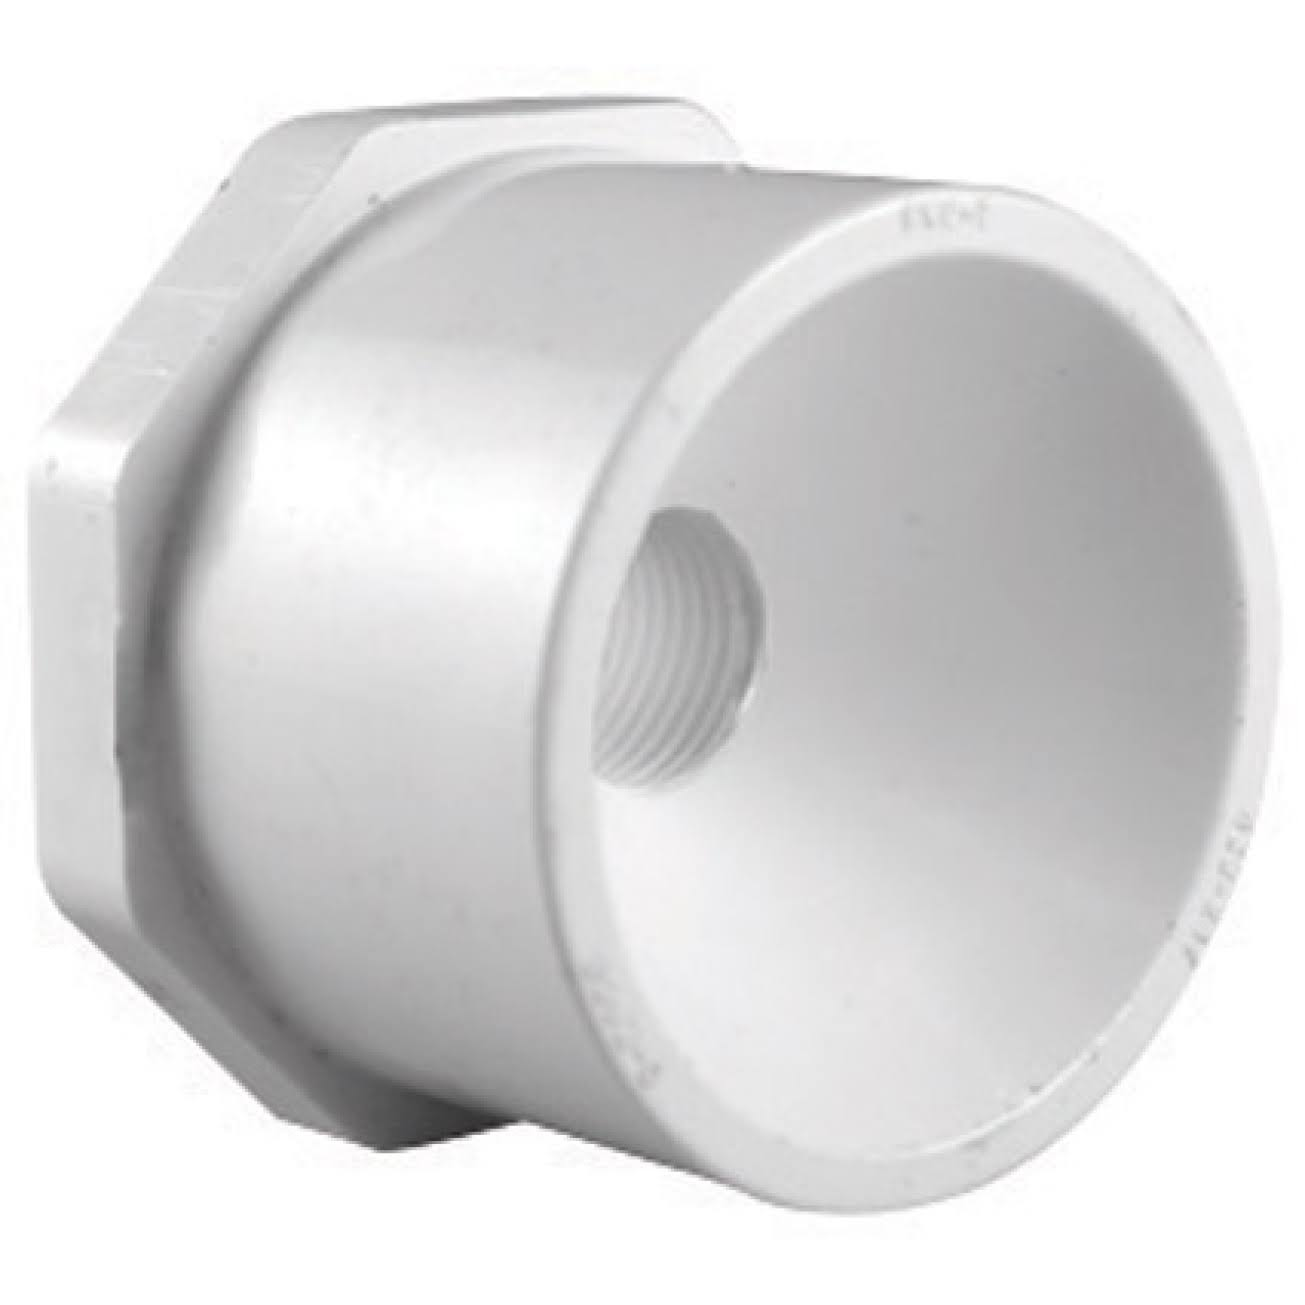 "Charlotte Pipe PVC Reducing Bushing - 1 1/2"" X 1"", White"